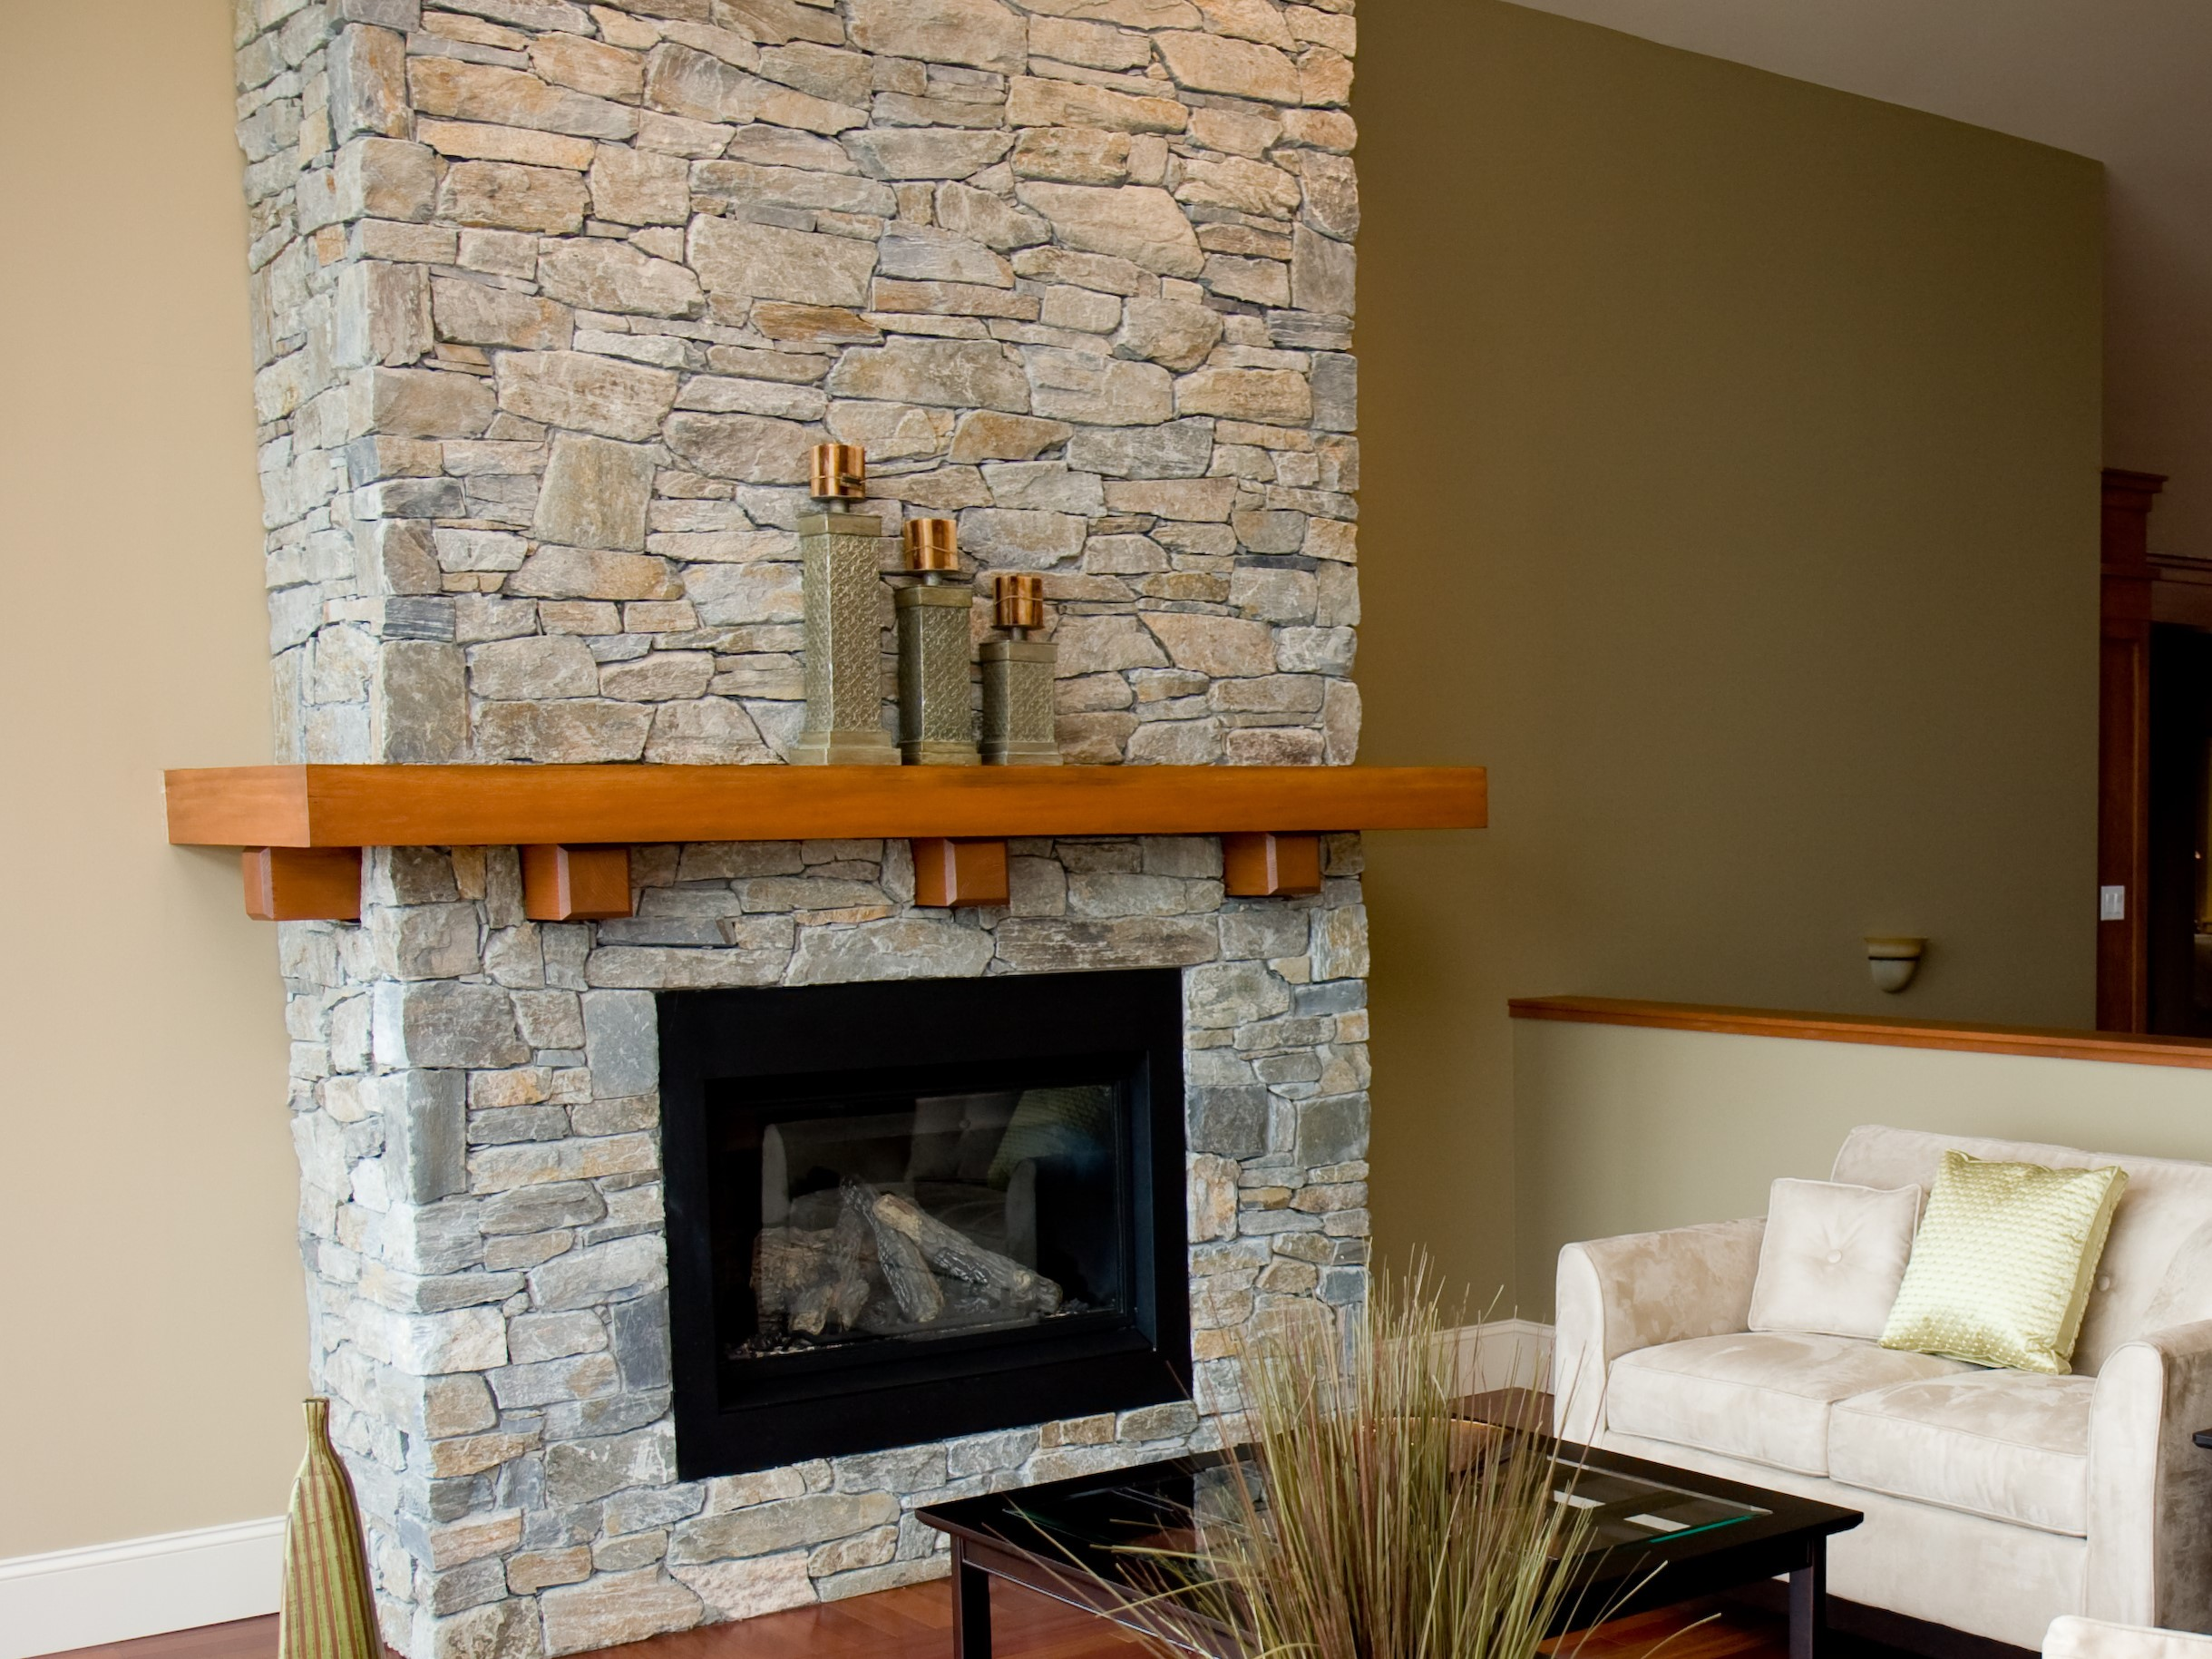 A stone fireplace and beautiful hardwood floors highlight the living room of a new luxury home.